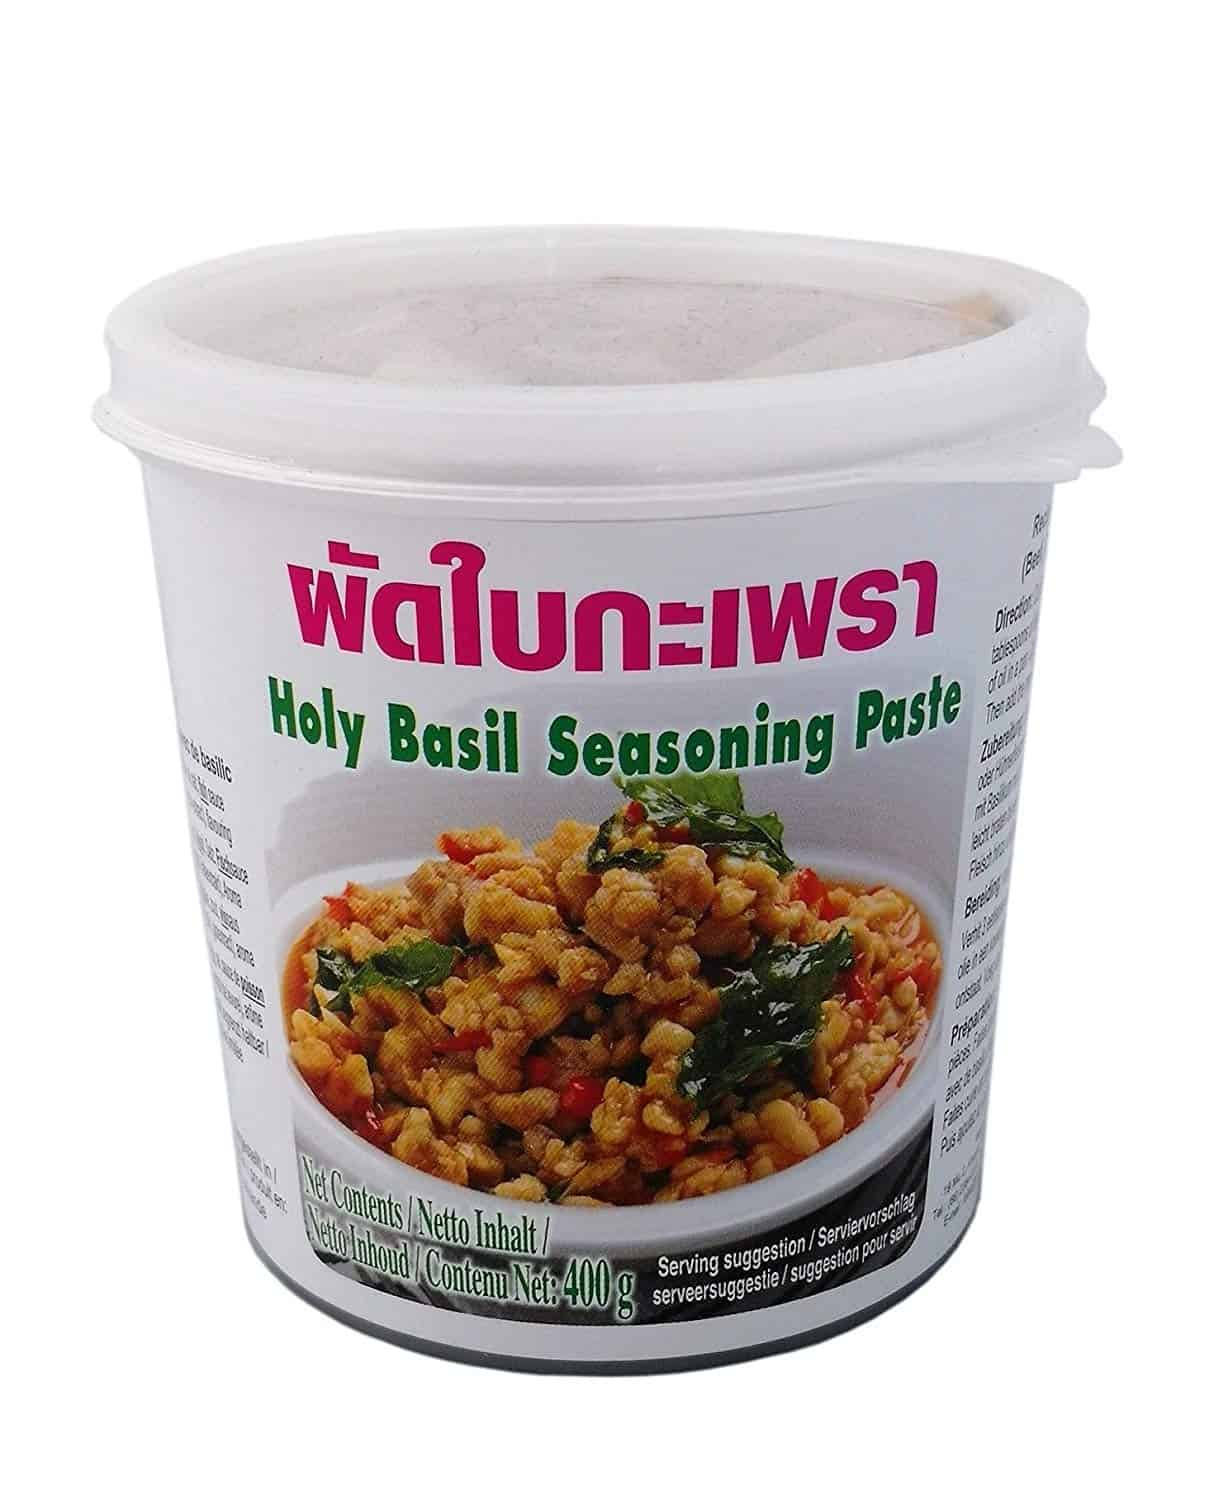 Lobo holy basil seasoning paste